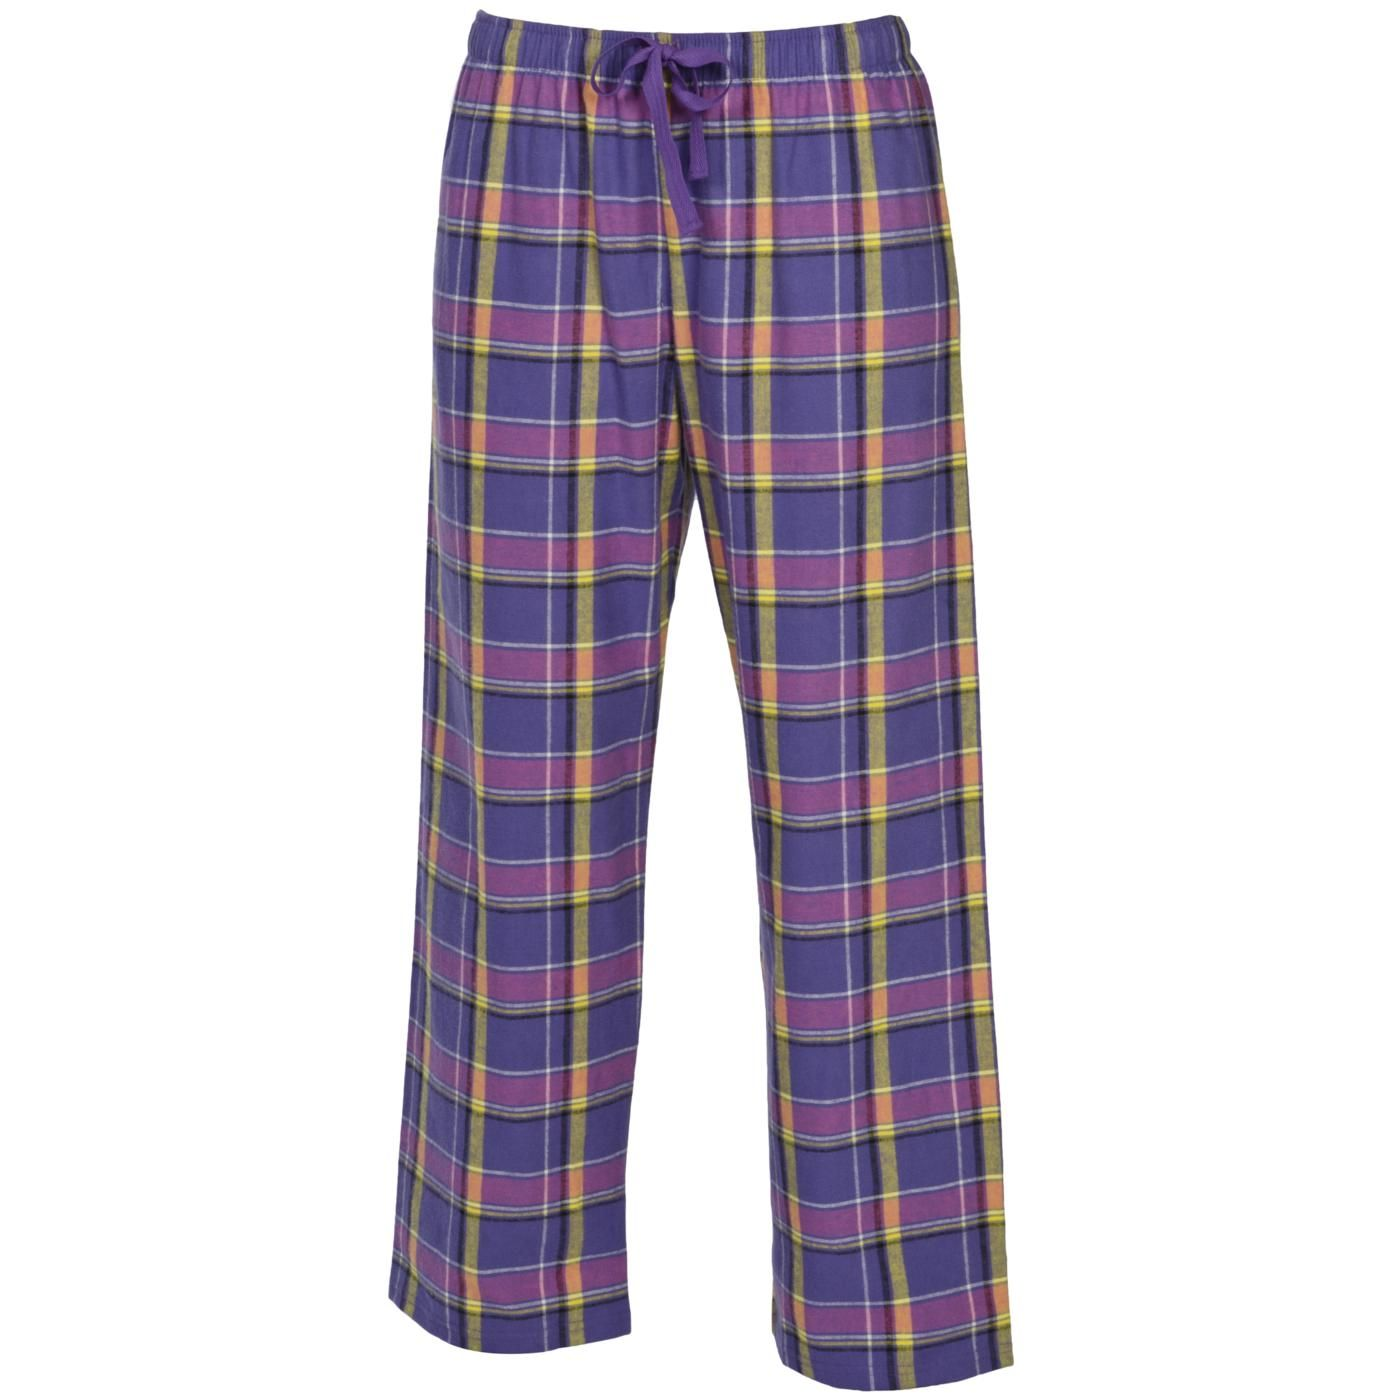 a17f0fb57e Plaid Flannel Pajama Pants for Women by Boxercraft. The cut is roomy ...